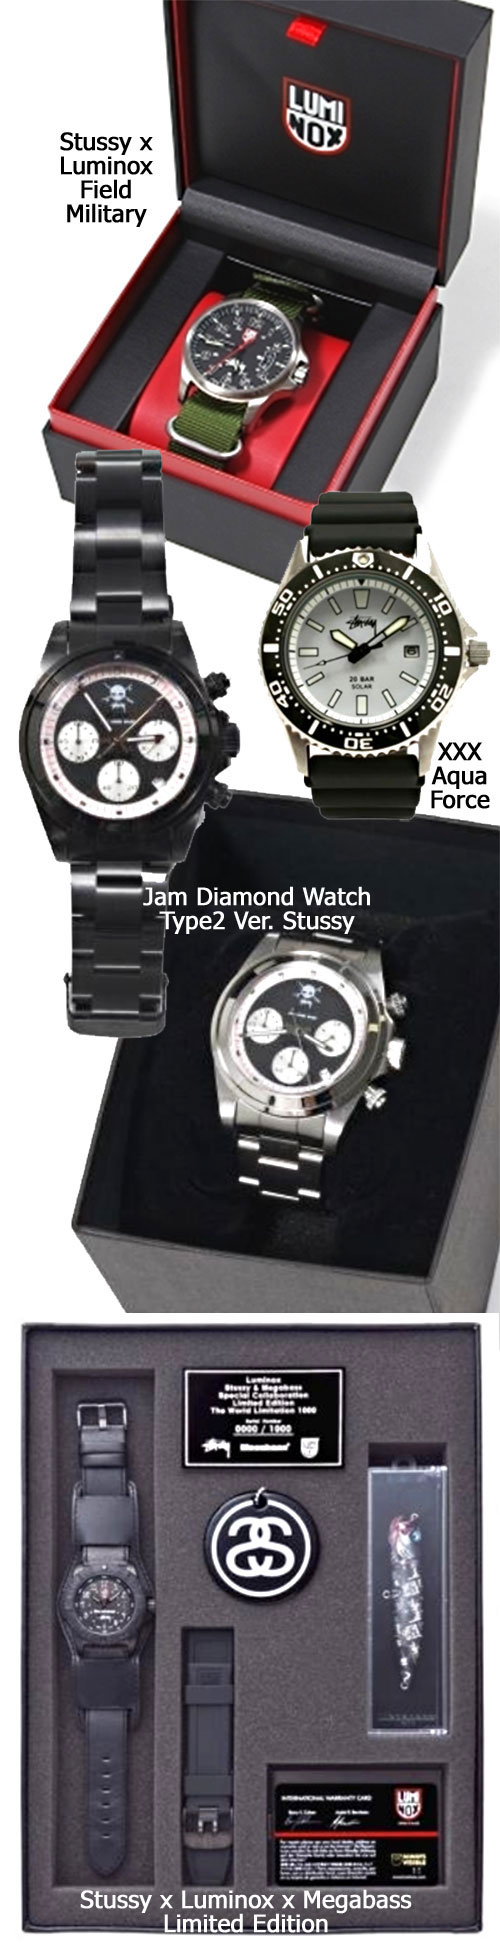 stussy watches available 2012 limited special editions